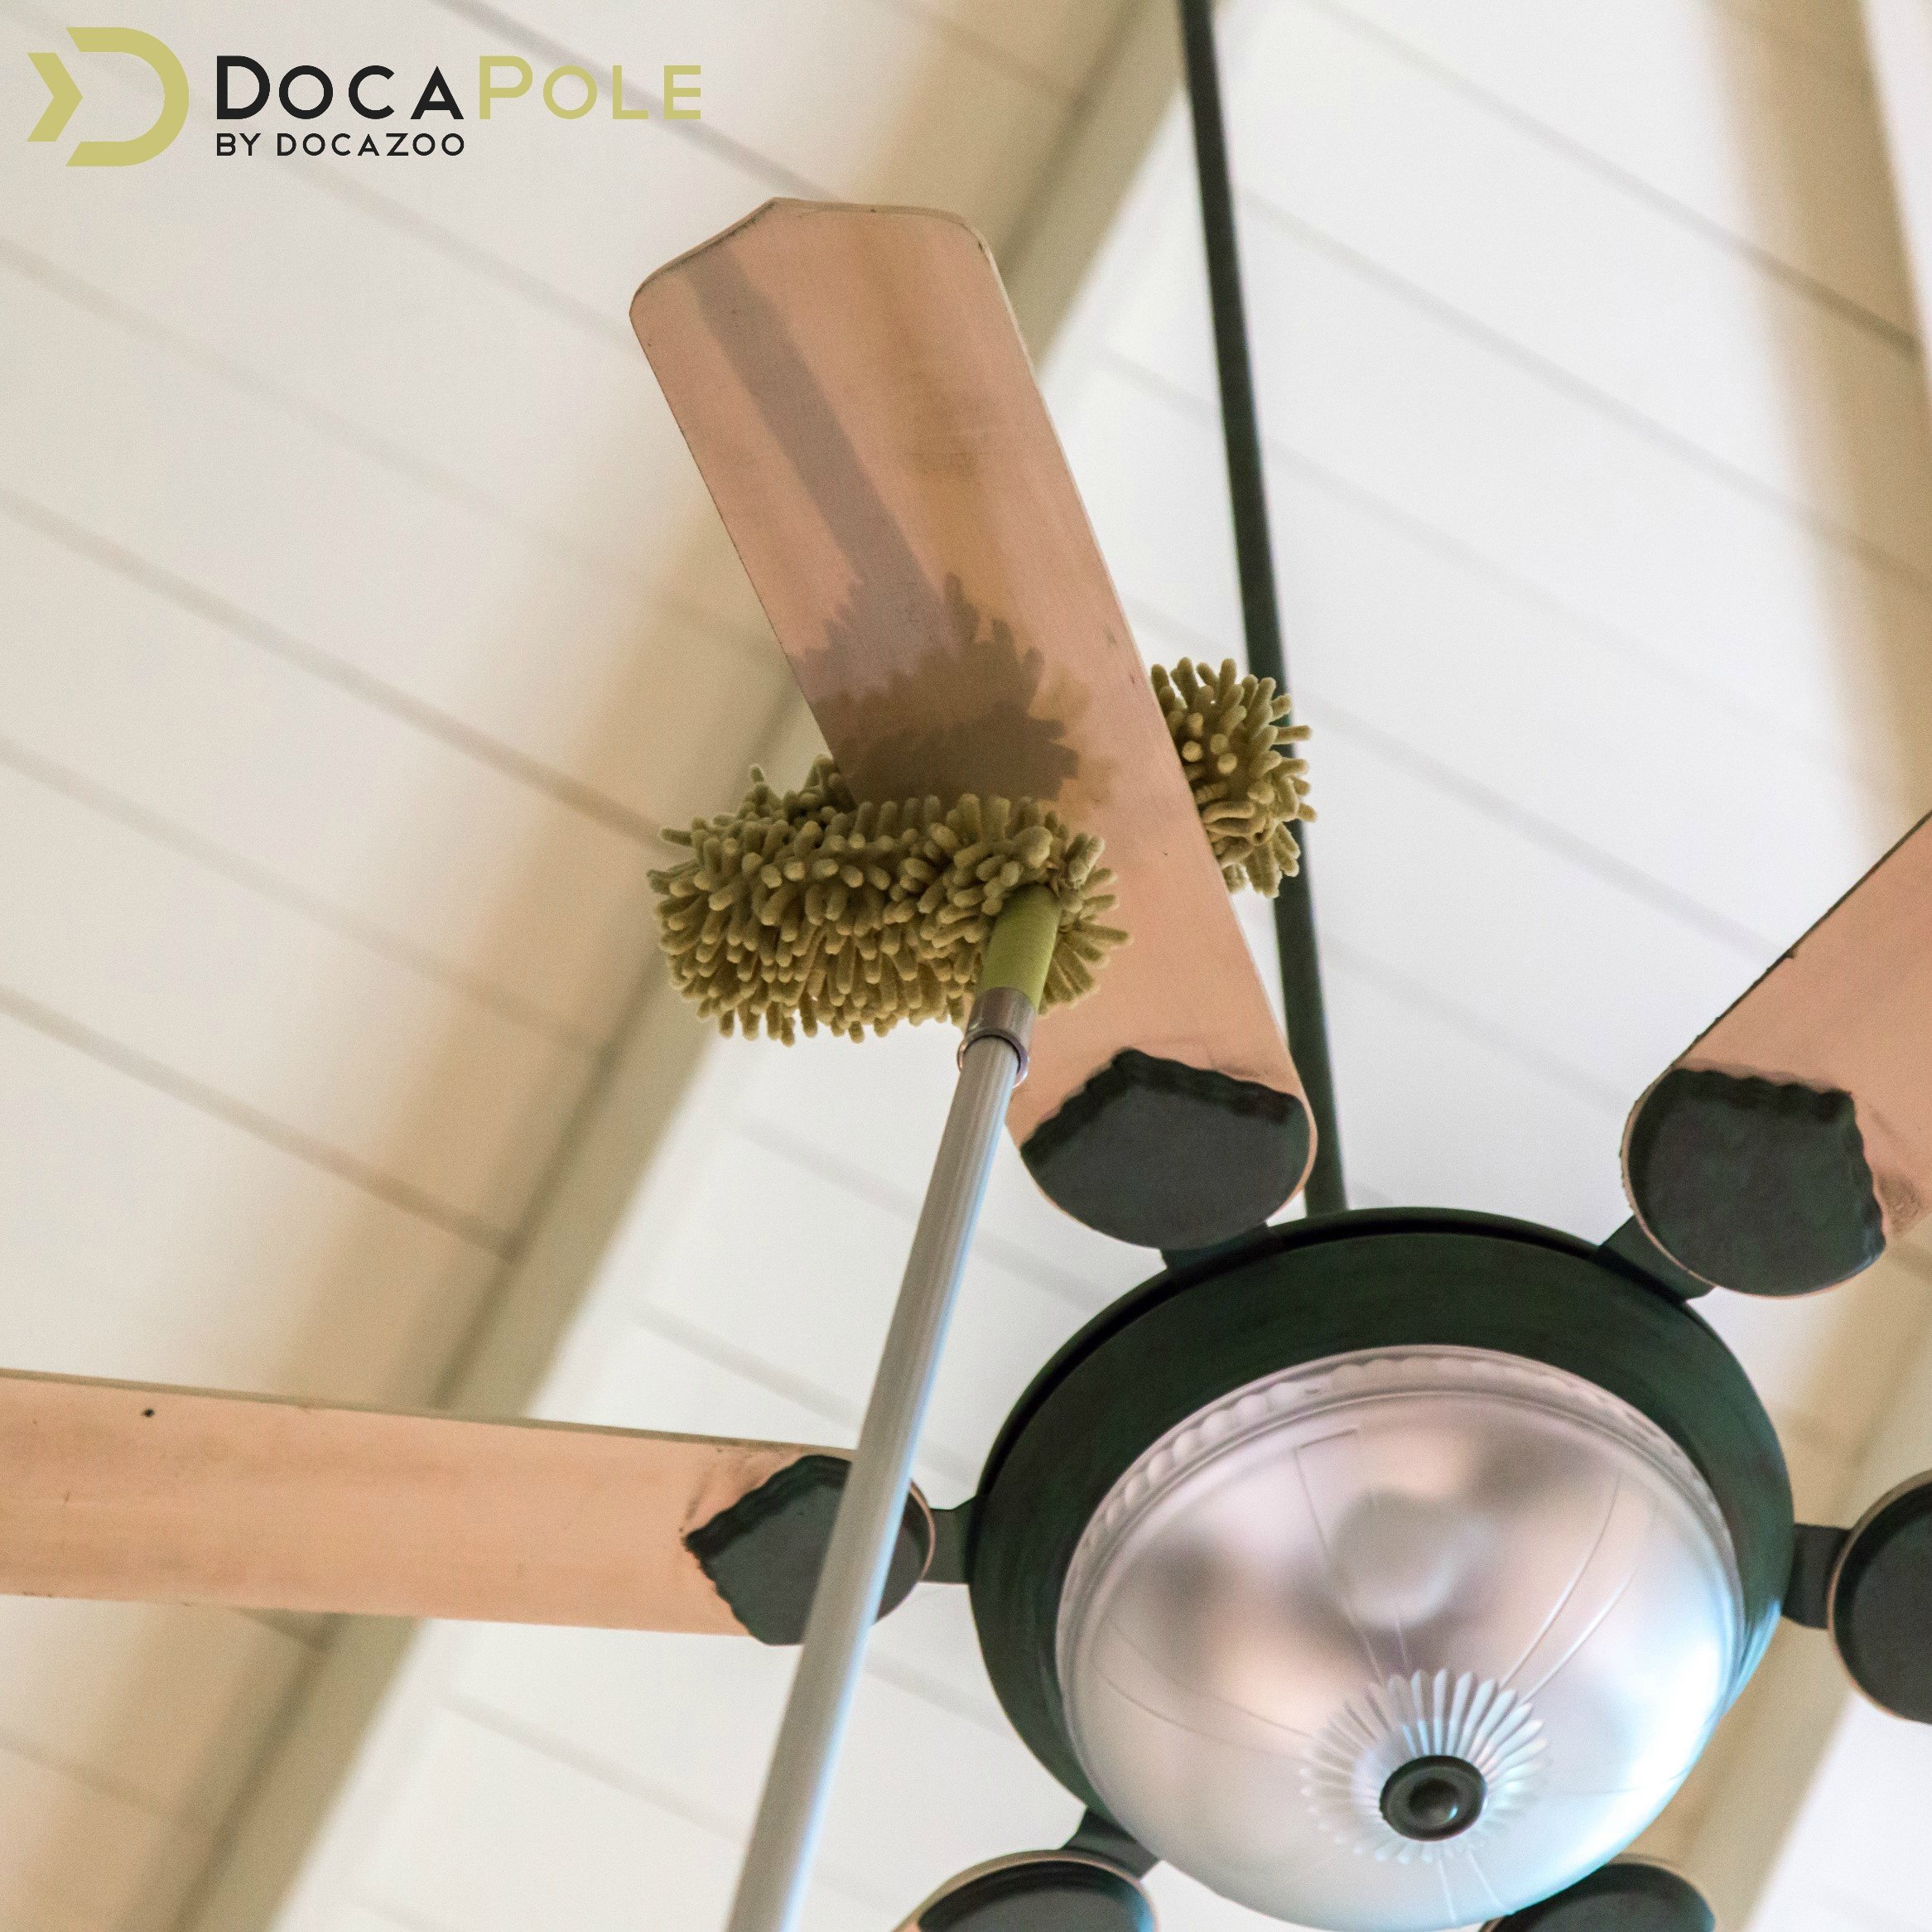 DocaPole Dusting Kit for Extension Pole or by Hand | Cleaning Kit Includes 3 Dusting Attachments | Cobweb Duster | Microfiber Feather Duster | Flexible Chenille Ceiling Fan Duster by DOCAZOO (Image #2)